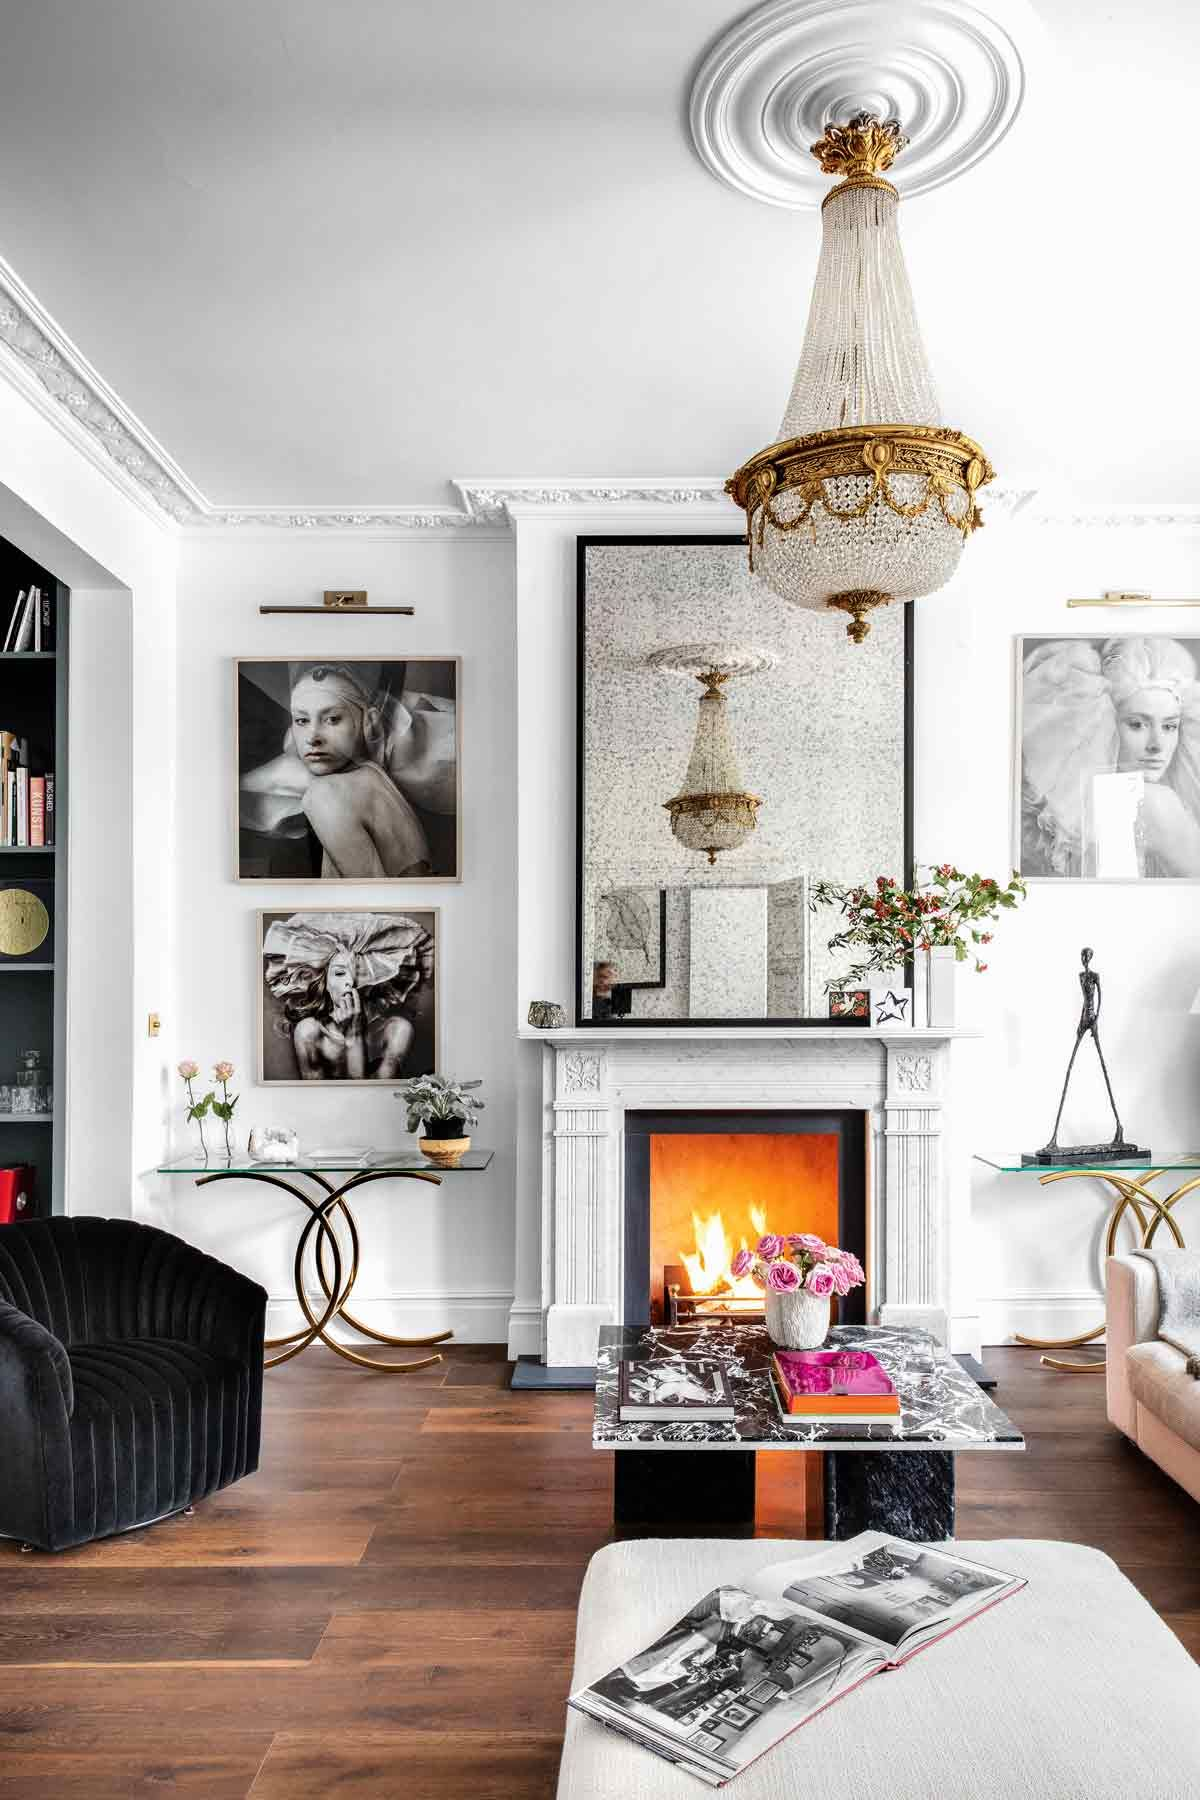 Townhouse Living Room Design: Explore A Serene, Elegant Victorian Townhouse That's Based